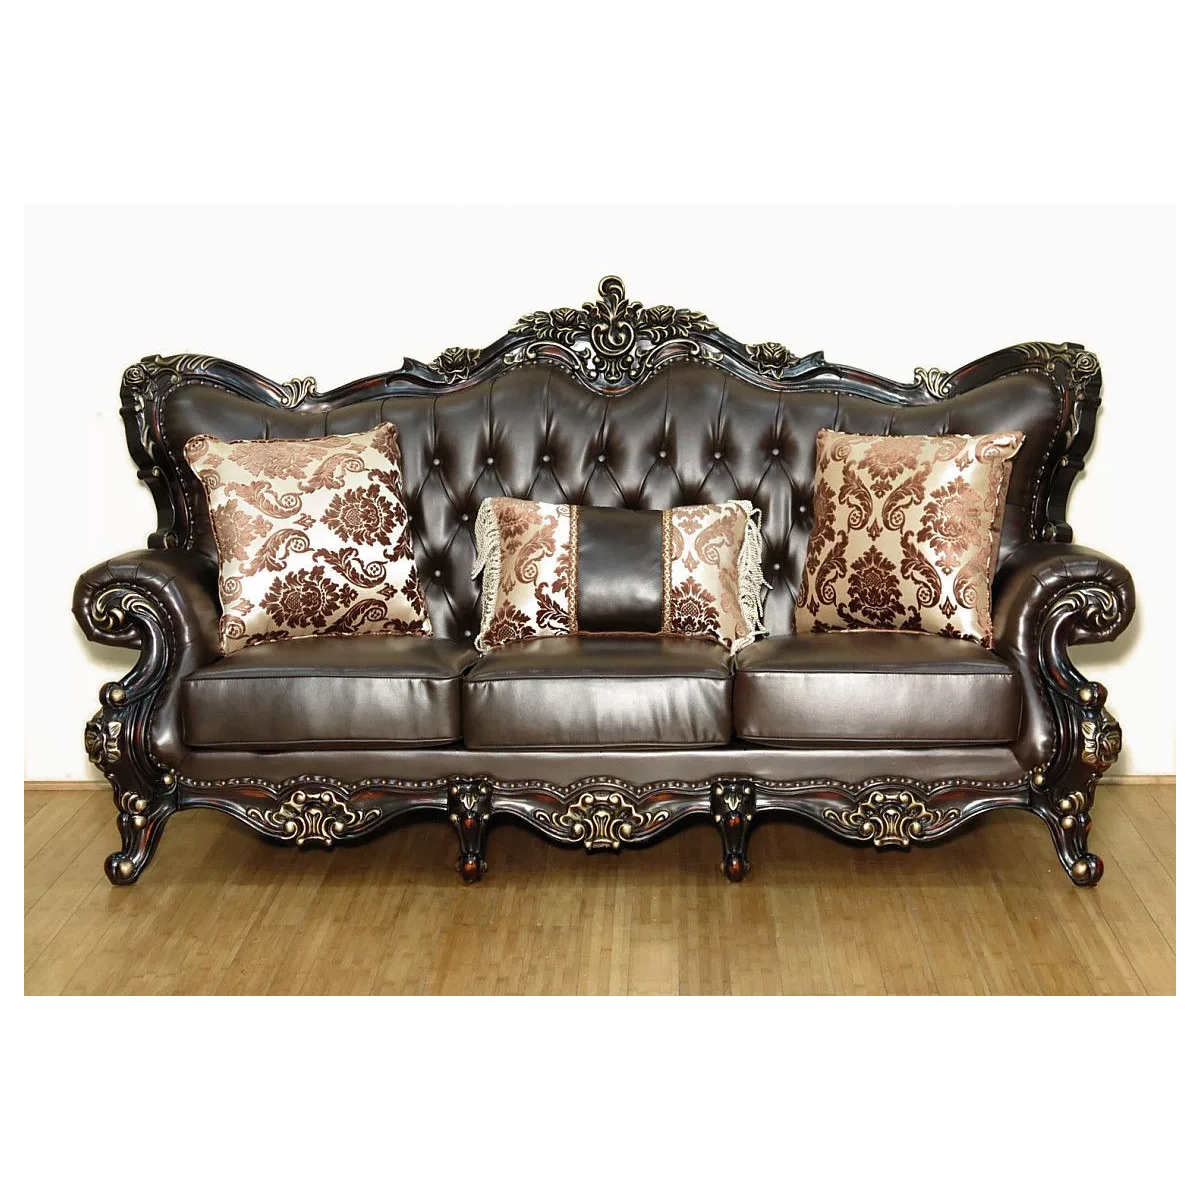 Genial Meridian Furniture 675 S Barcelona Tufted Brown Leather Sofa On Rich Cherry  Frame W/ Ornate Carving